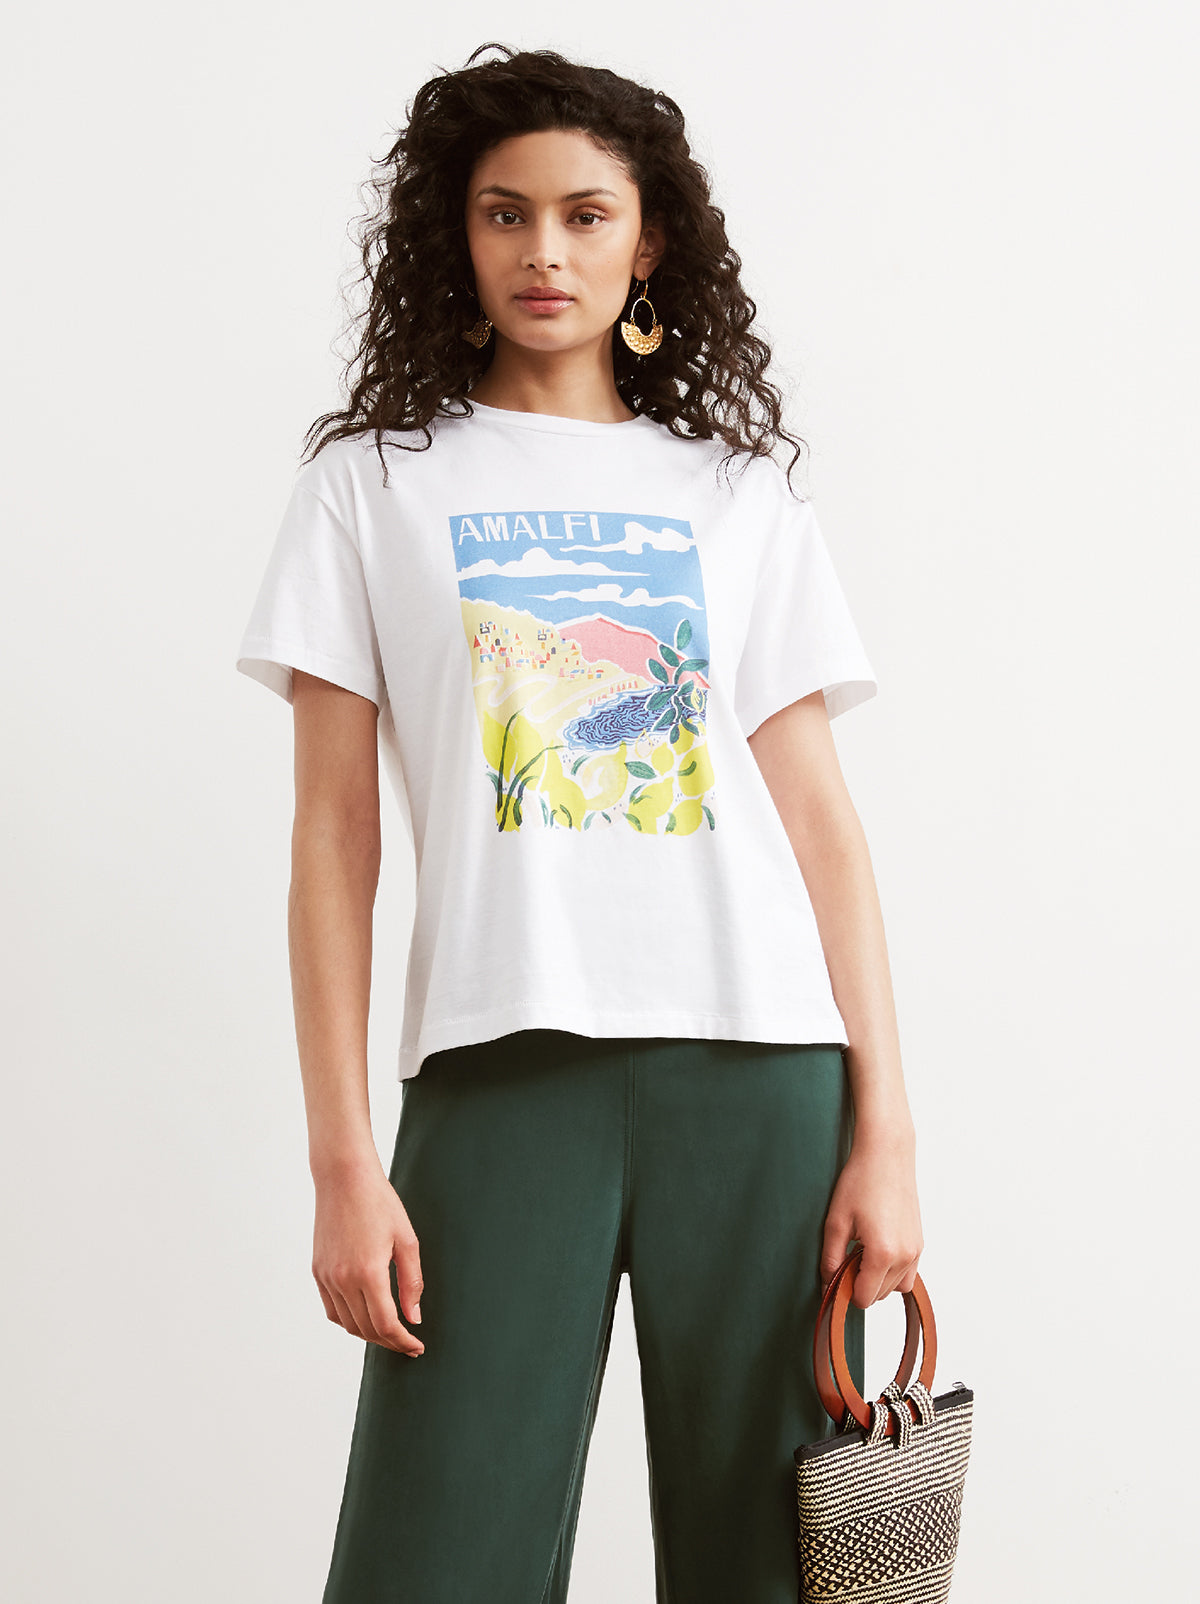 Amalfi White Printed Cotton Crew Neck T-shirt by KITRI Studio